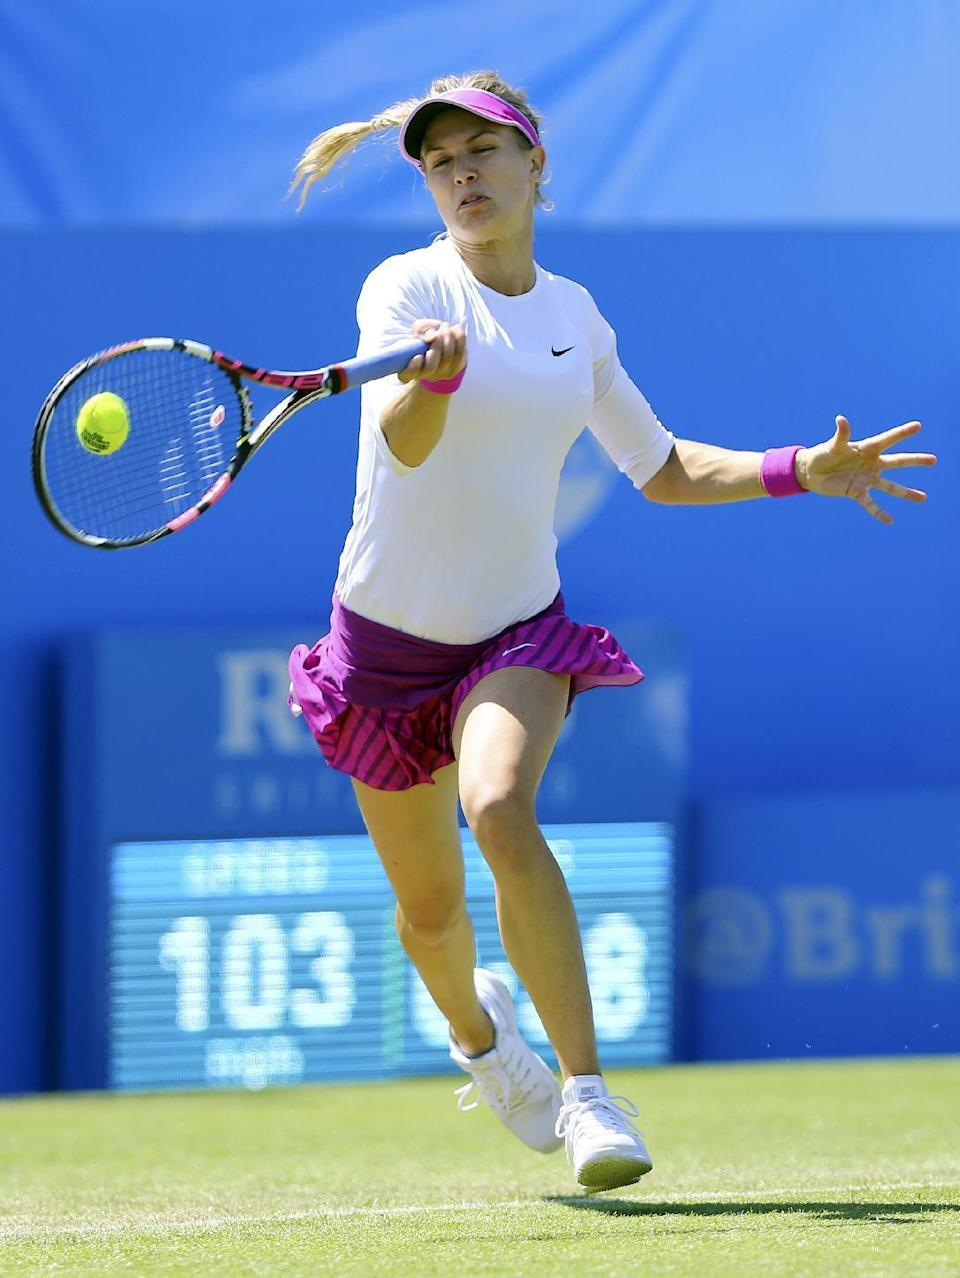 Canada's Eugenie Bouchard returns the ball to Switzerland's Belinda Bencic during day five of the women's international tennis tournament at Devonshire Park, Eastbourne, England, Wednesday June 24, 2015. (Gareth Fuller/PA via AP) UNITED KINGDOM OUT NO SALES NO ARCHIVE